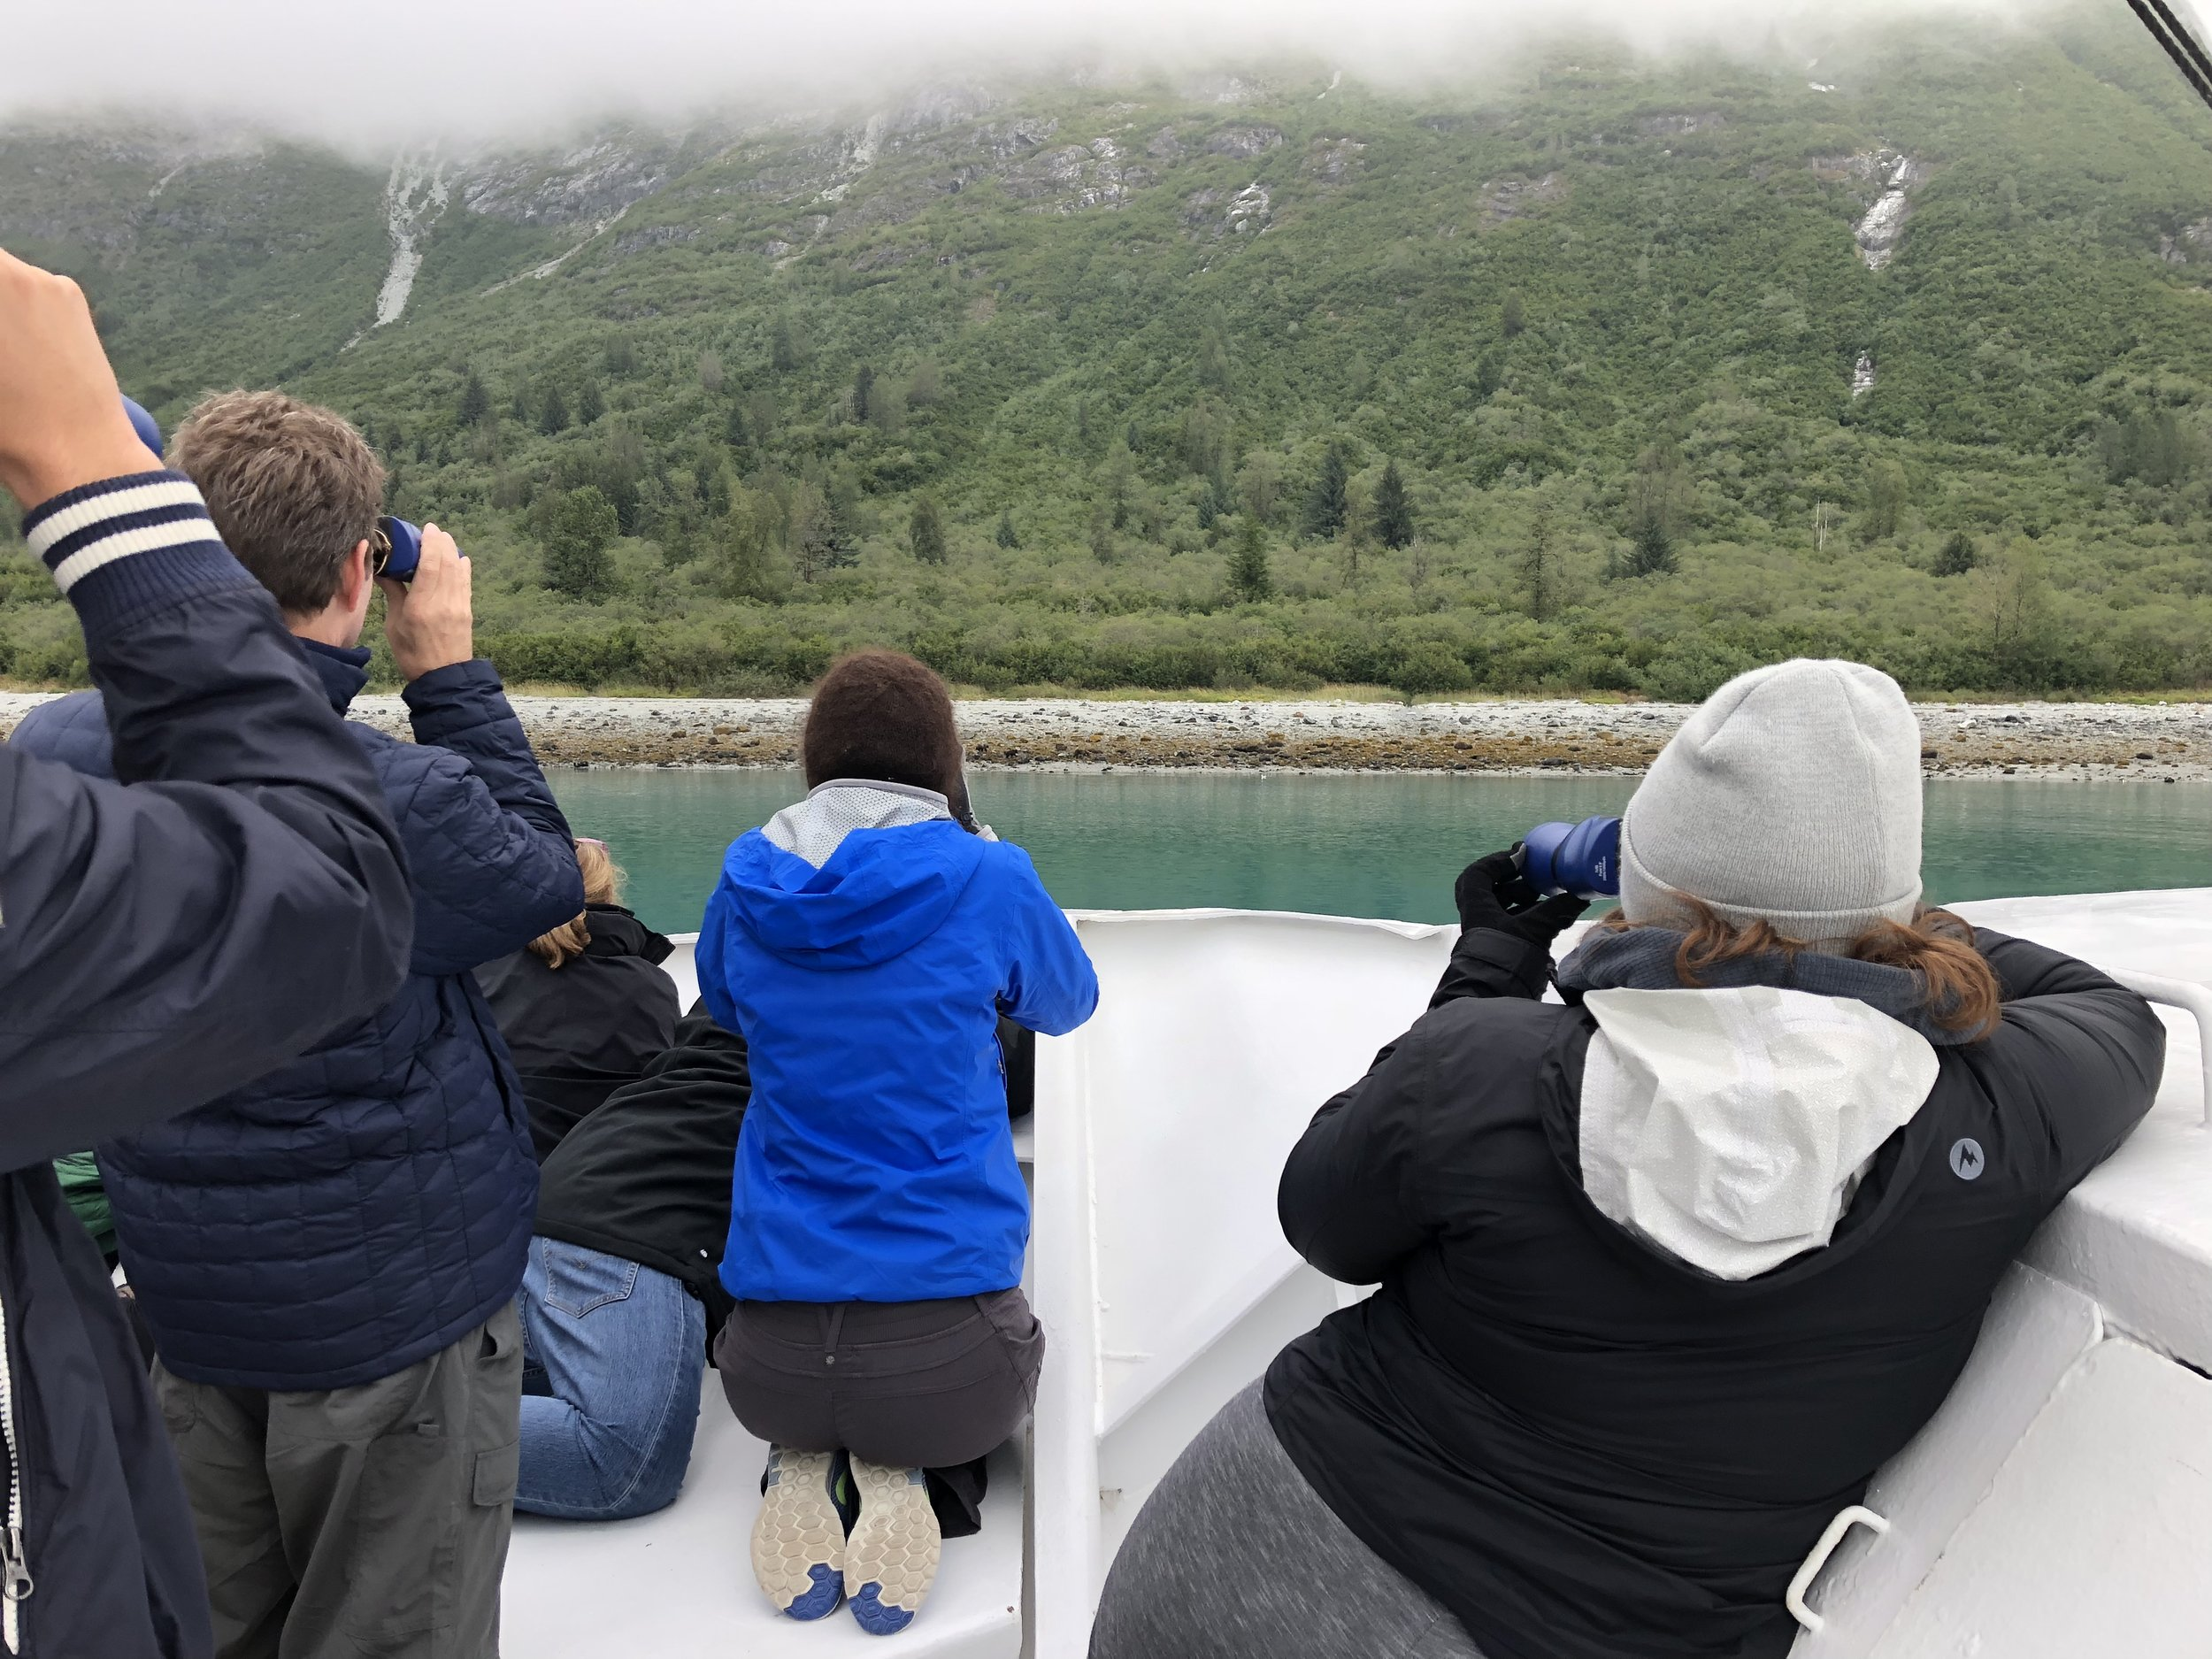 Passengers on board share space looking at bears along Russel Island In Glacier Bay NP